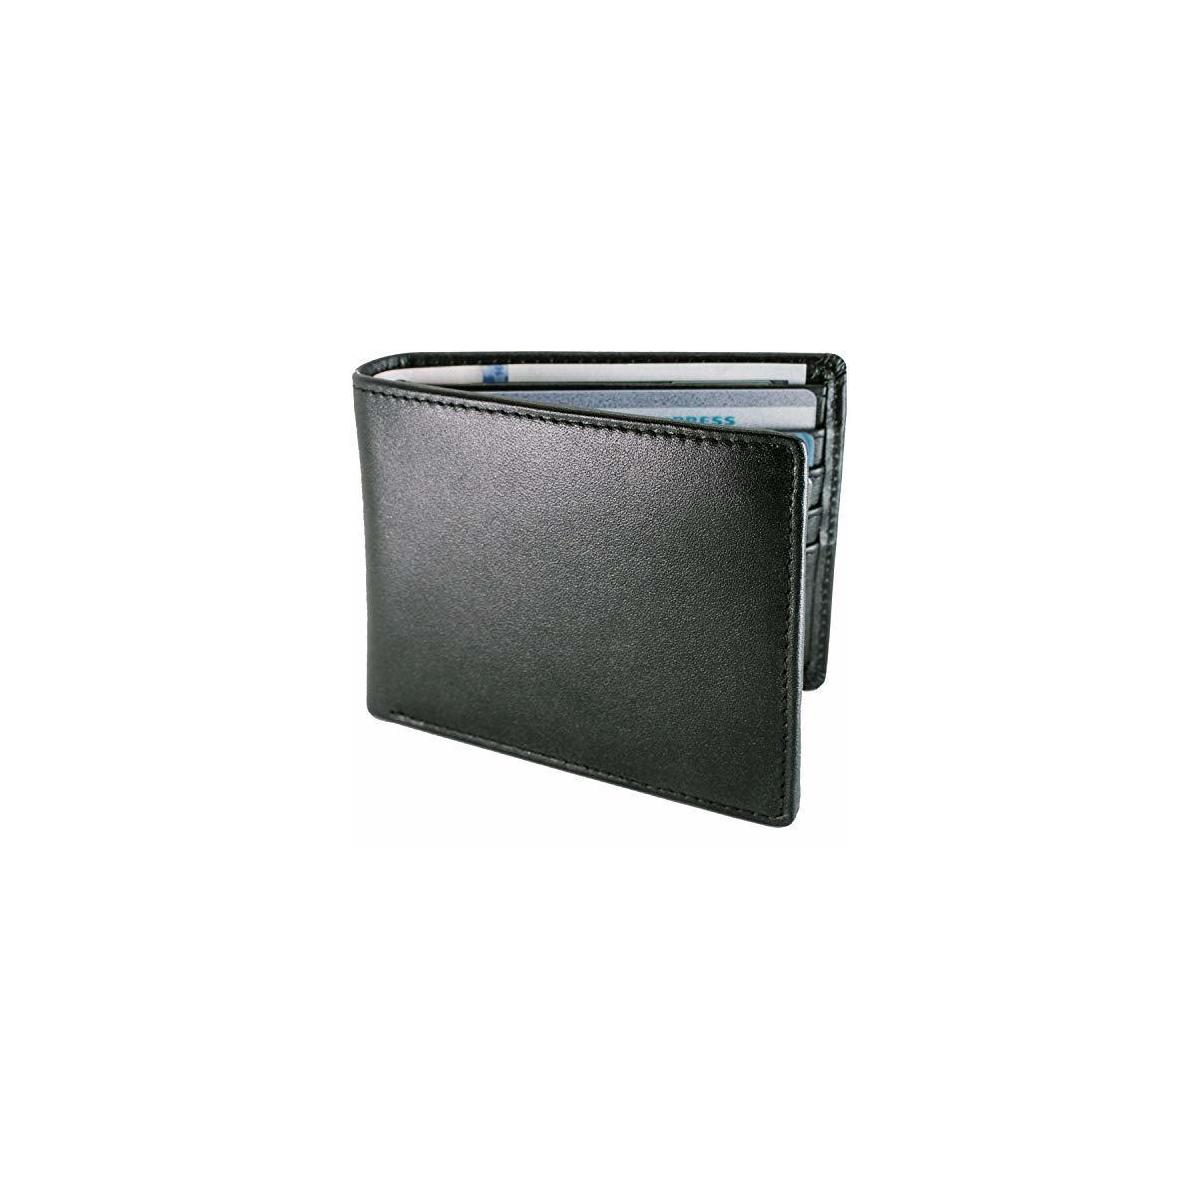 Luxurious Mens RFID Trifold Wallet | Leather Wallets For Men RFID Blocking | Genuine Leather | Extra Capacity Mens Wallet